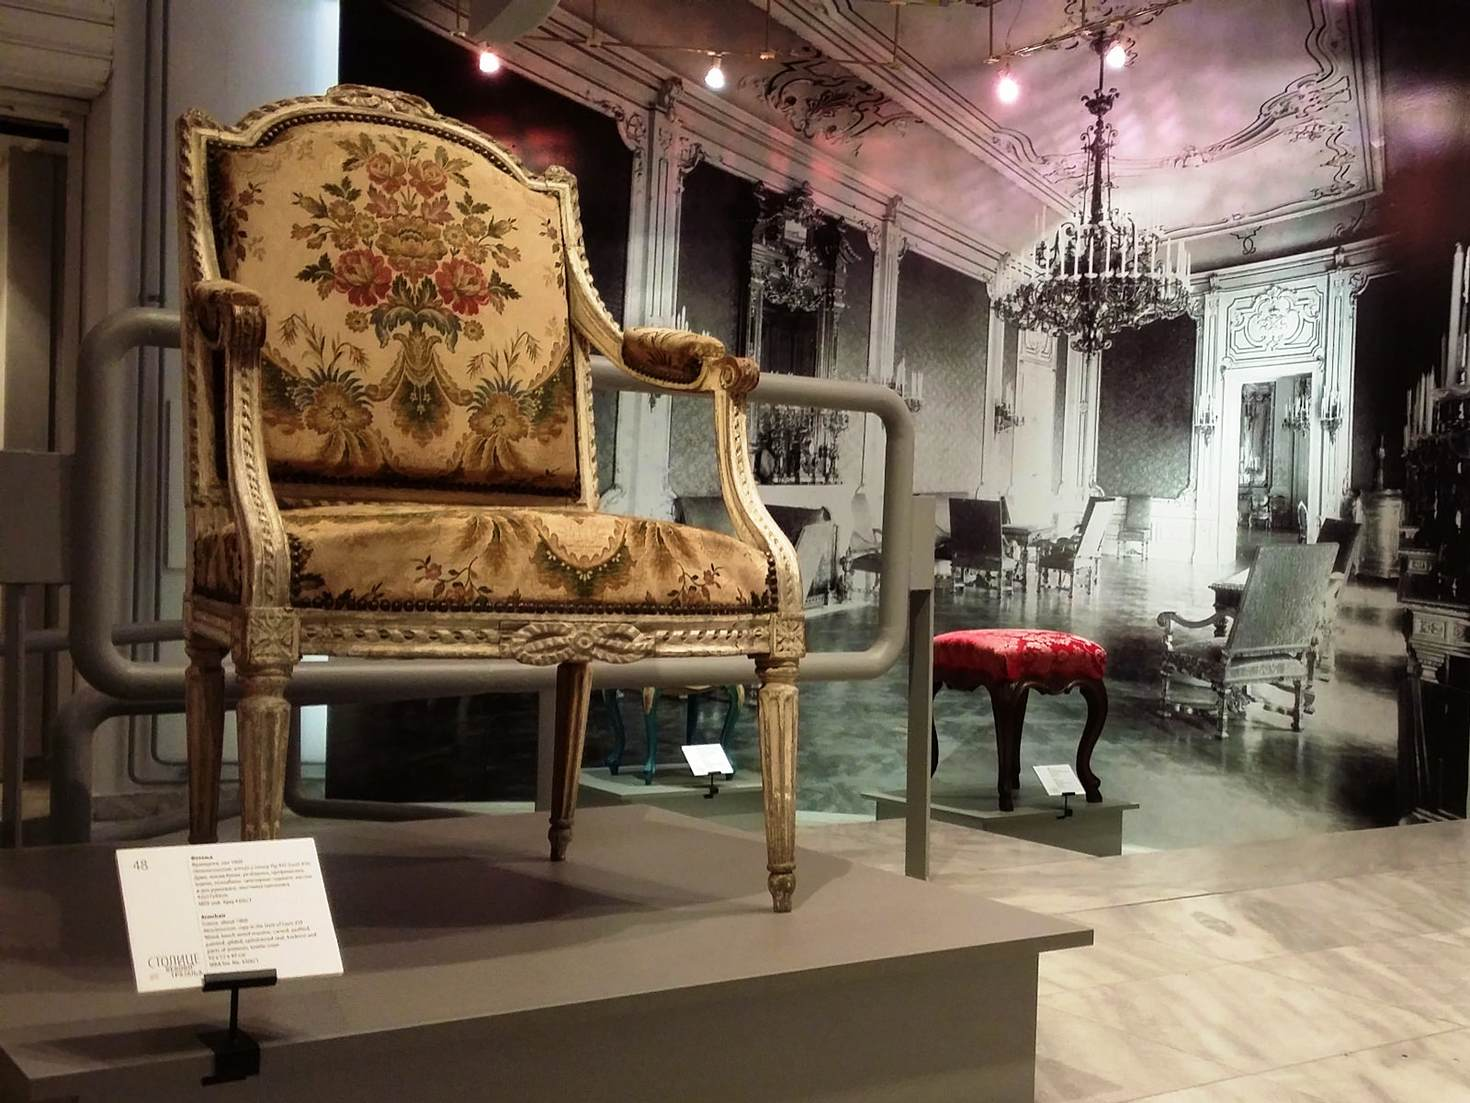 Seating furniture exhibition at the Museum of Applied Arts © Mladen Savkovic / Lonely Planet